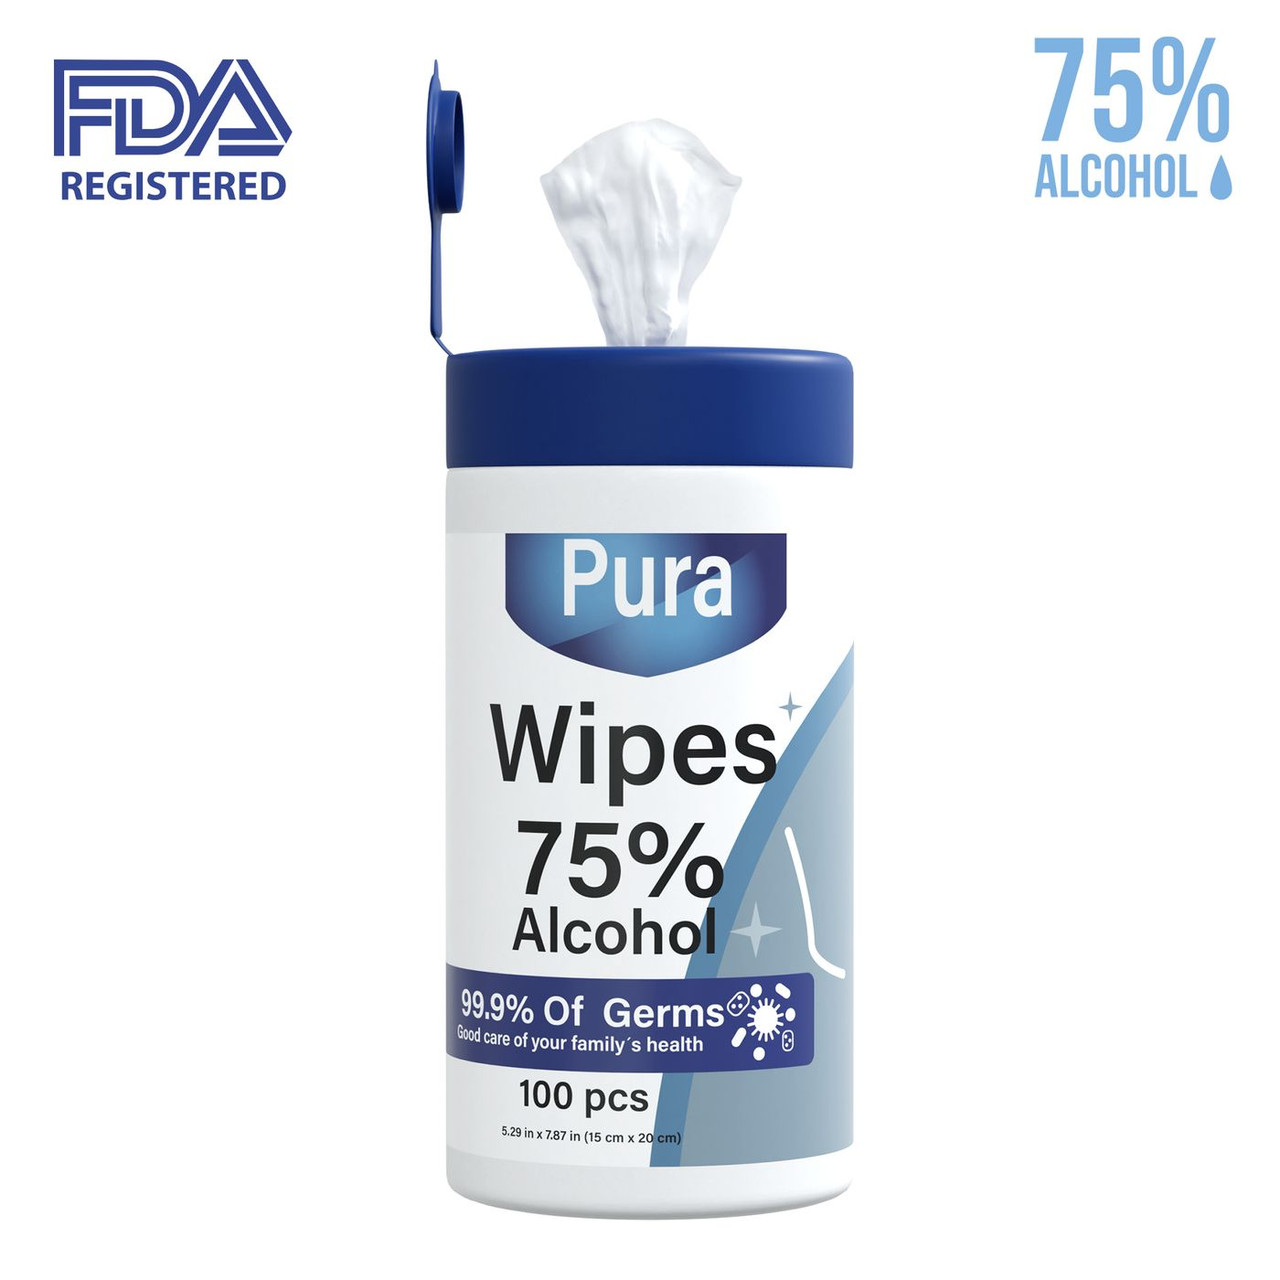 75% Alcohol Wipes - 100 Count Containers  - Case of 12 (Only $6 Each)